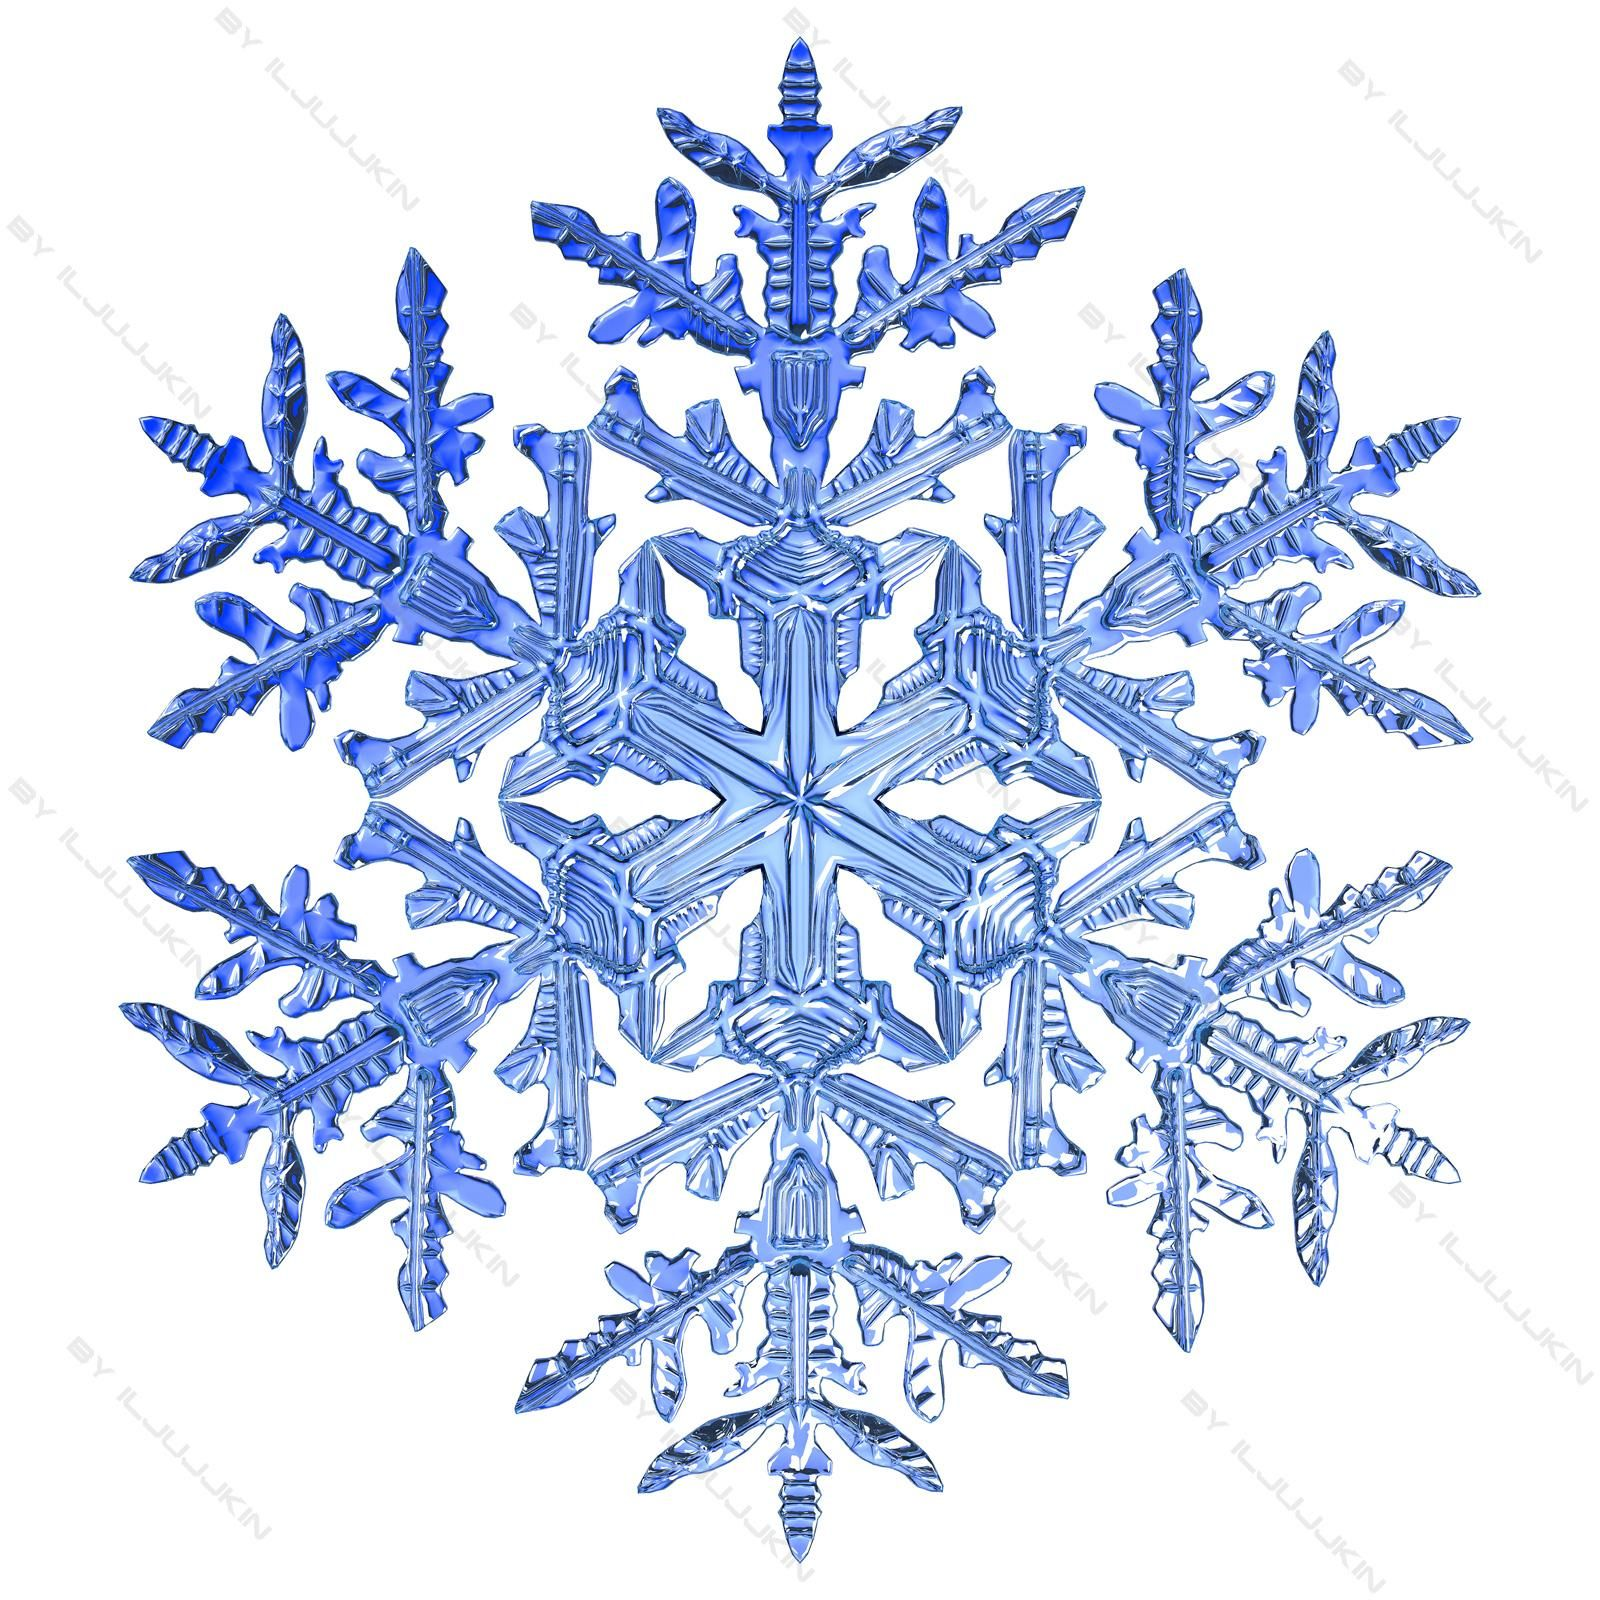 Snowflake 3 3d Model Ad Snowflake Model With Images